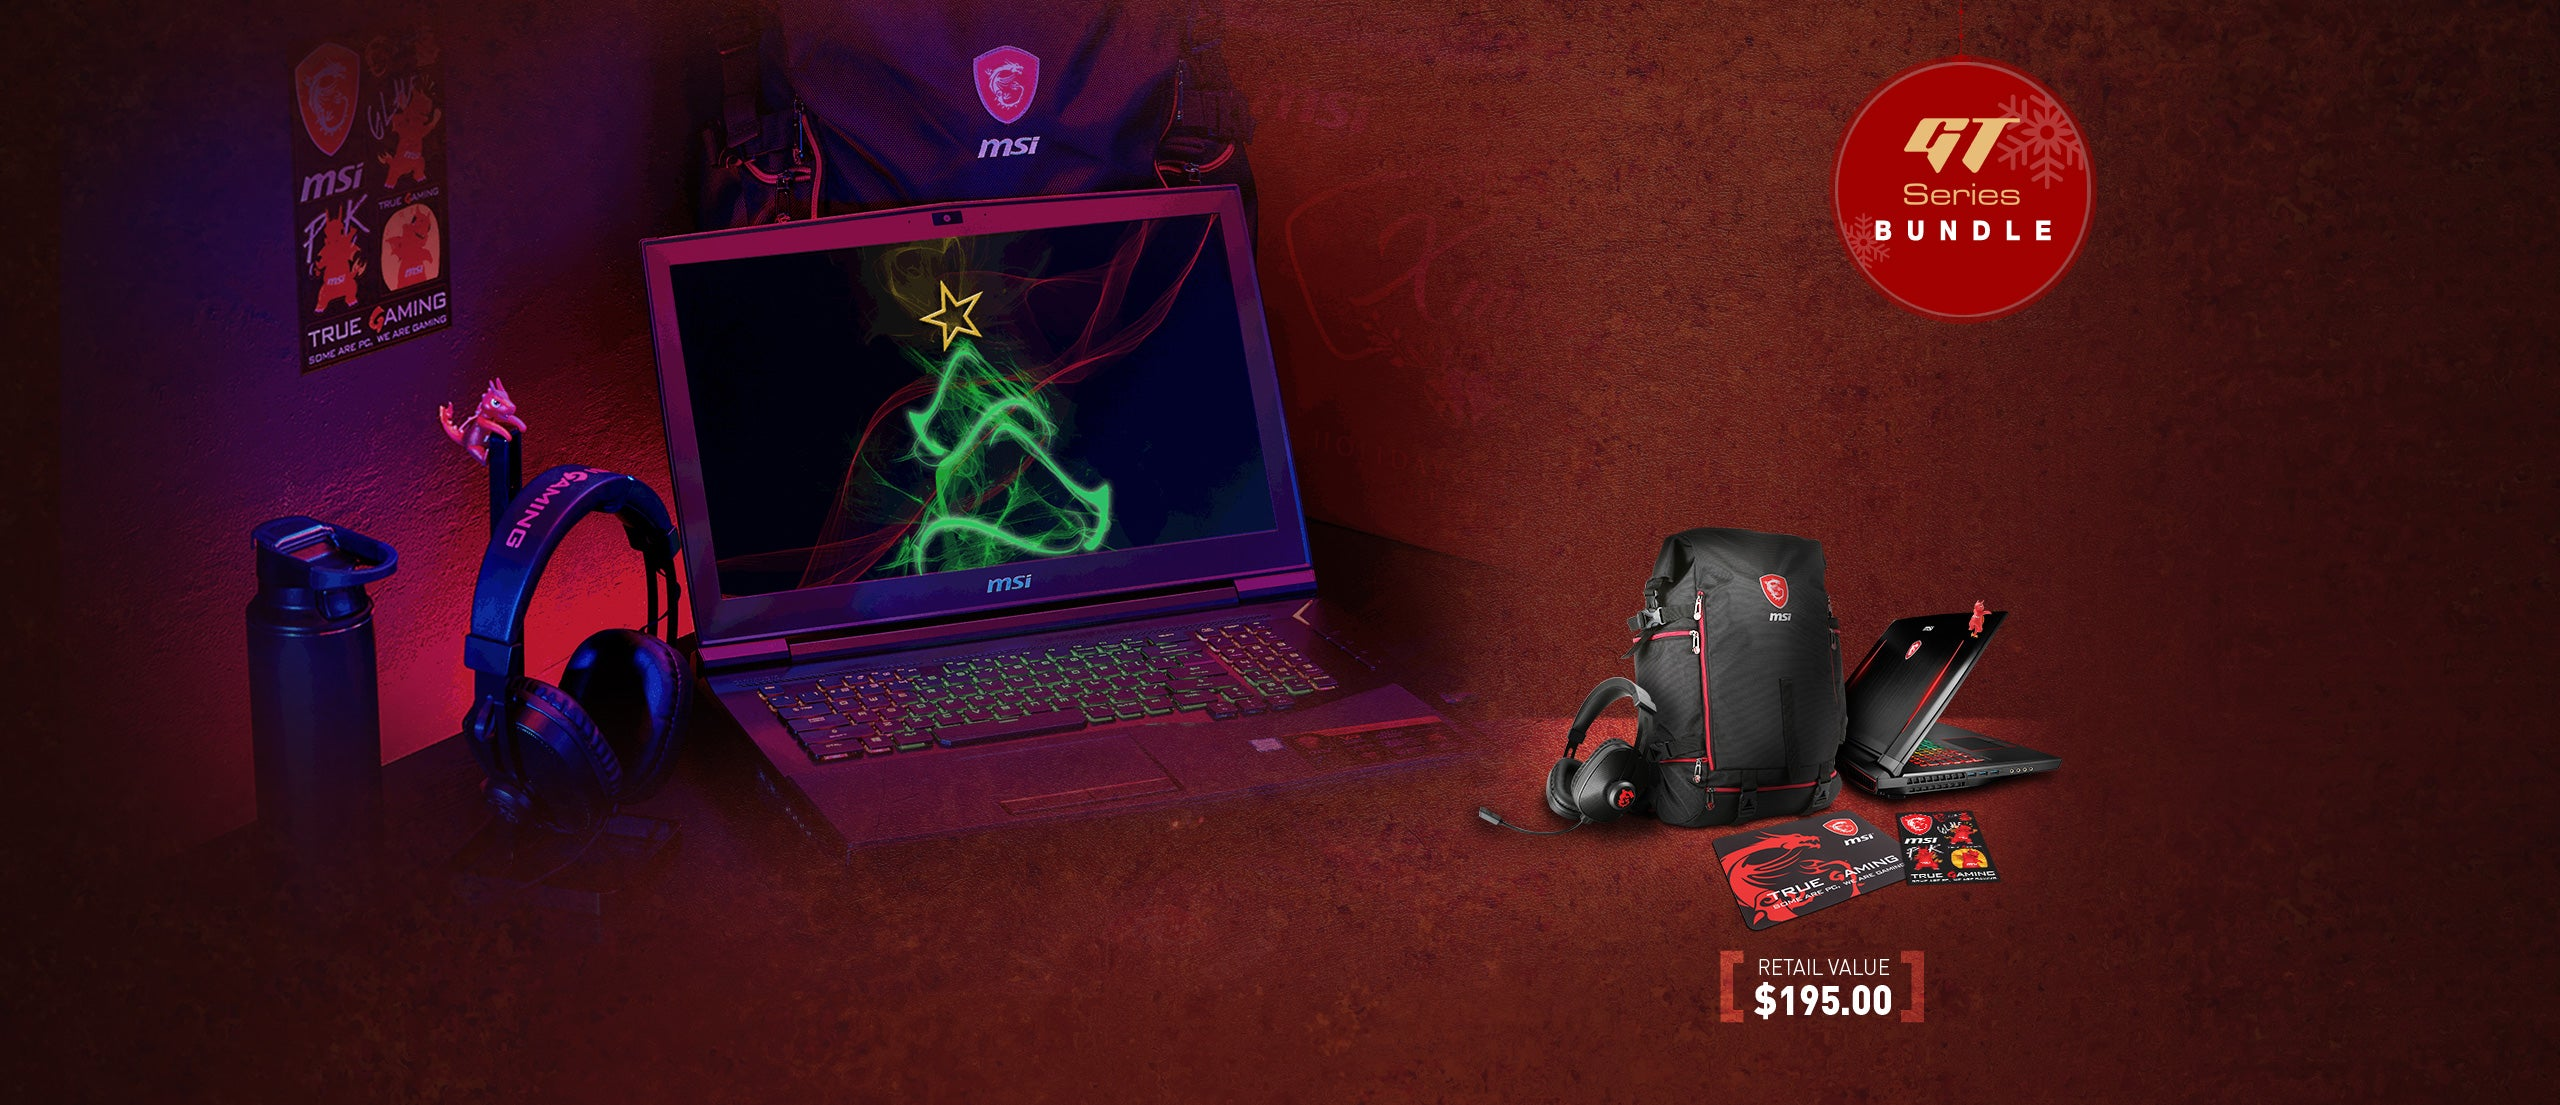 GT Series Bundle. Retail Value $195.00. Image Shows MSI headset, backpack, mousepad, stickers and Lucky the Dragon climber.